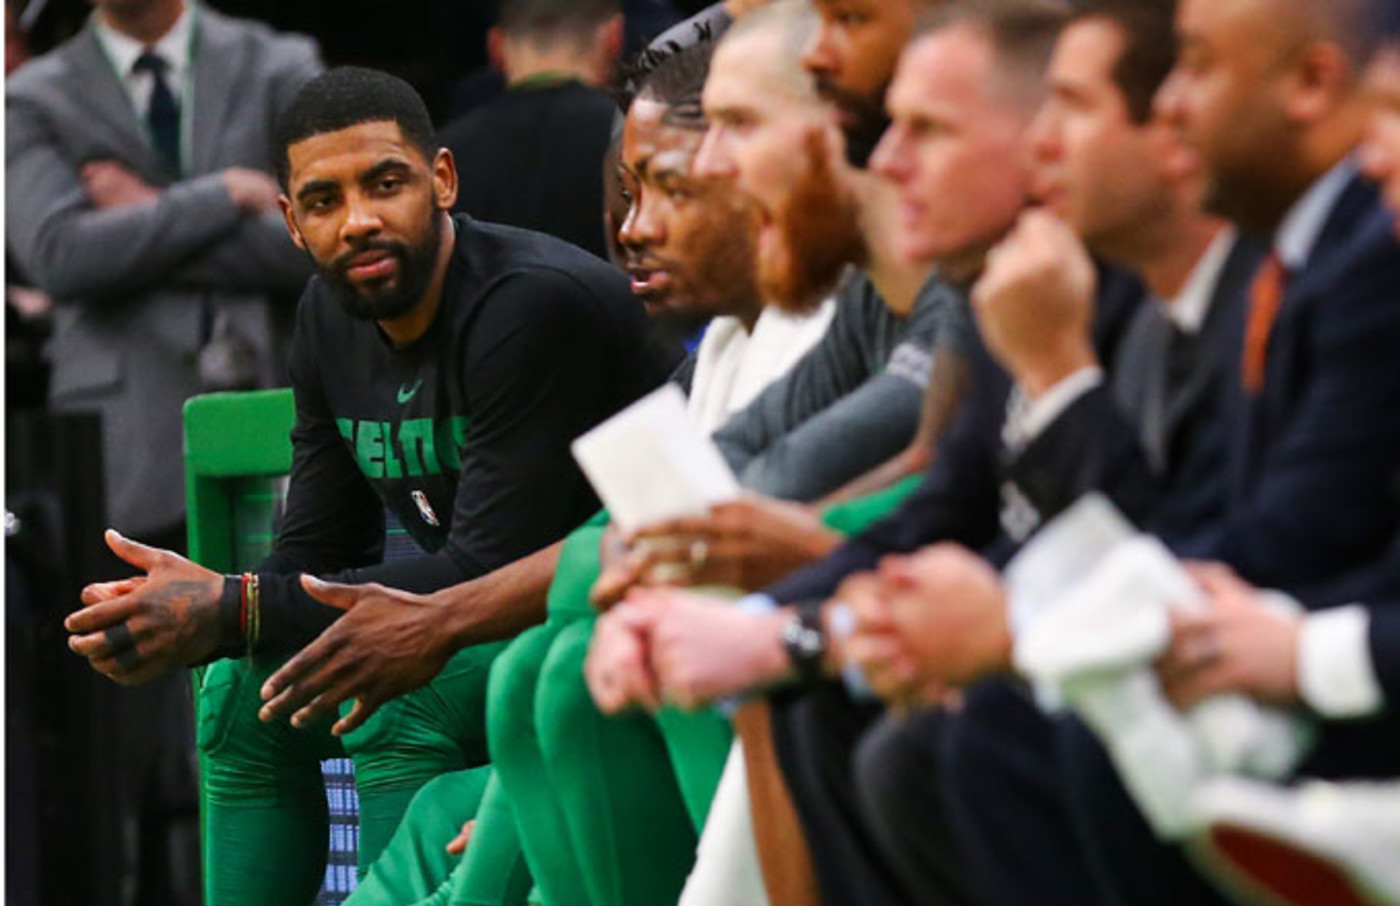 Kyrie Irving sits on the Celtics' bench